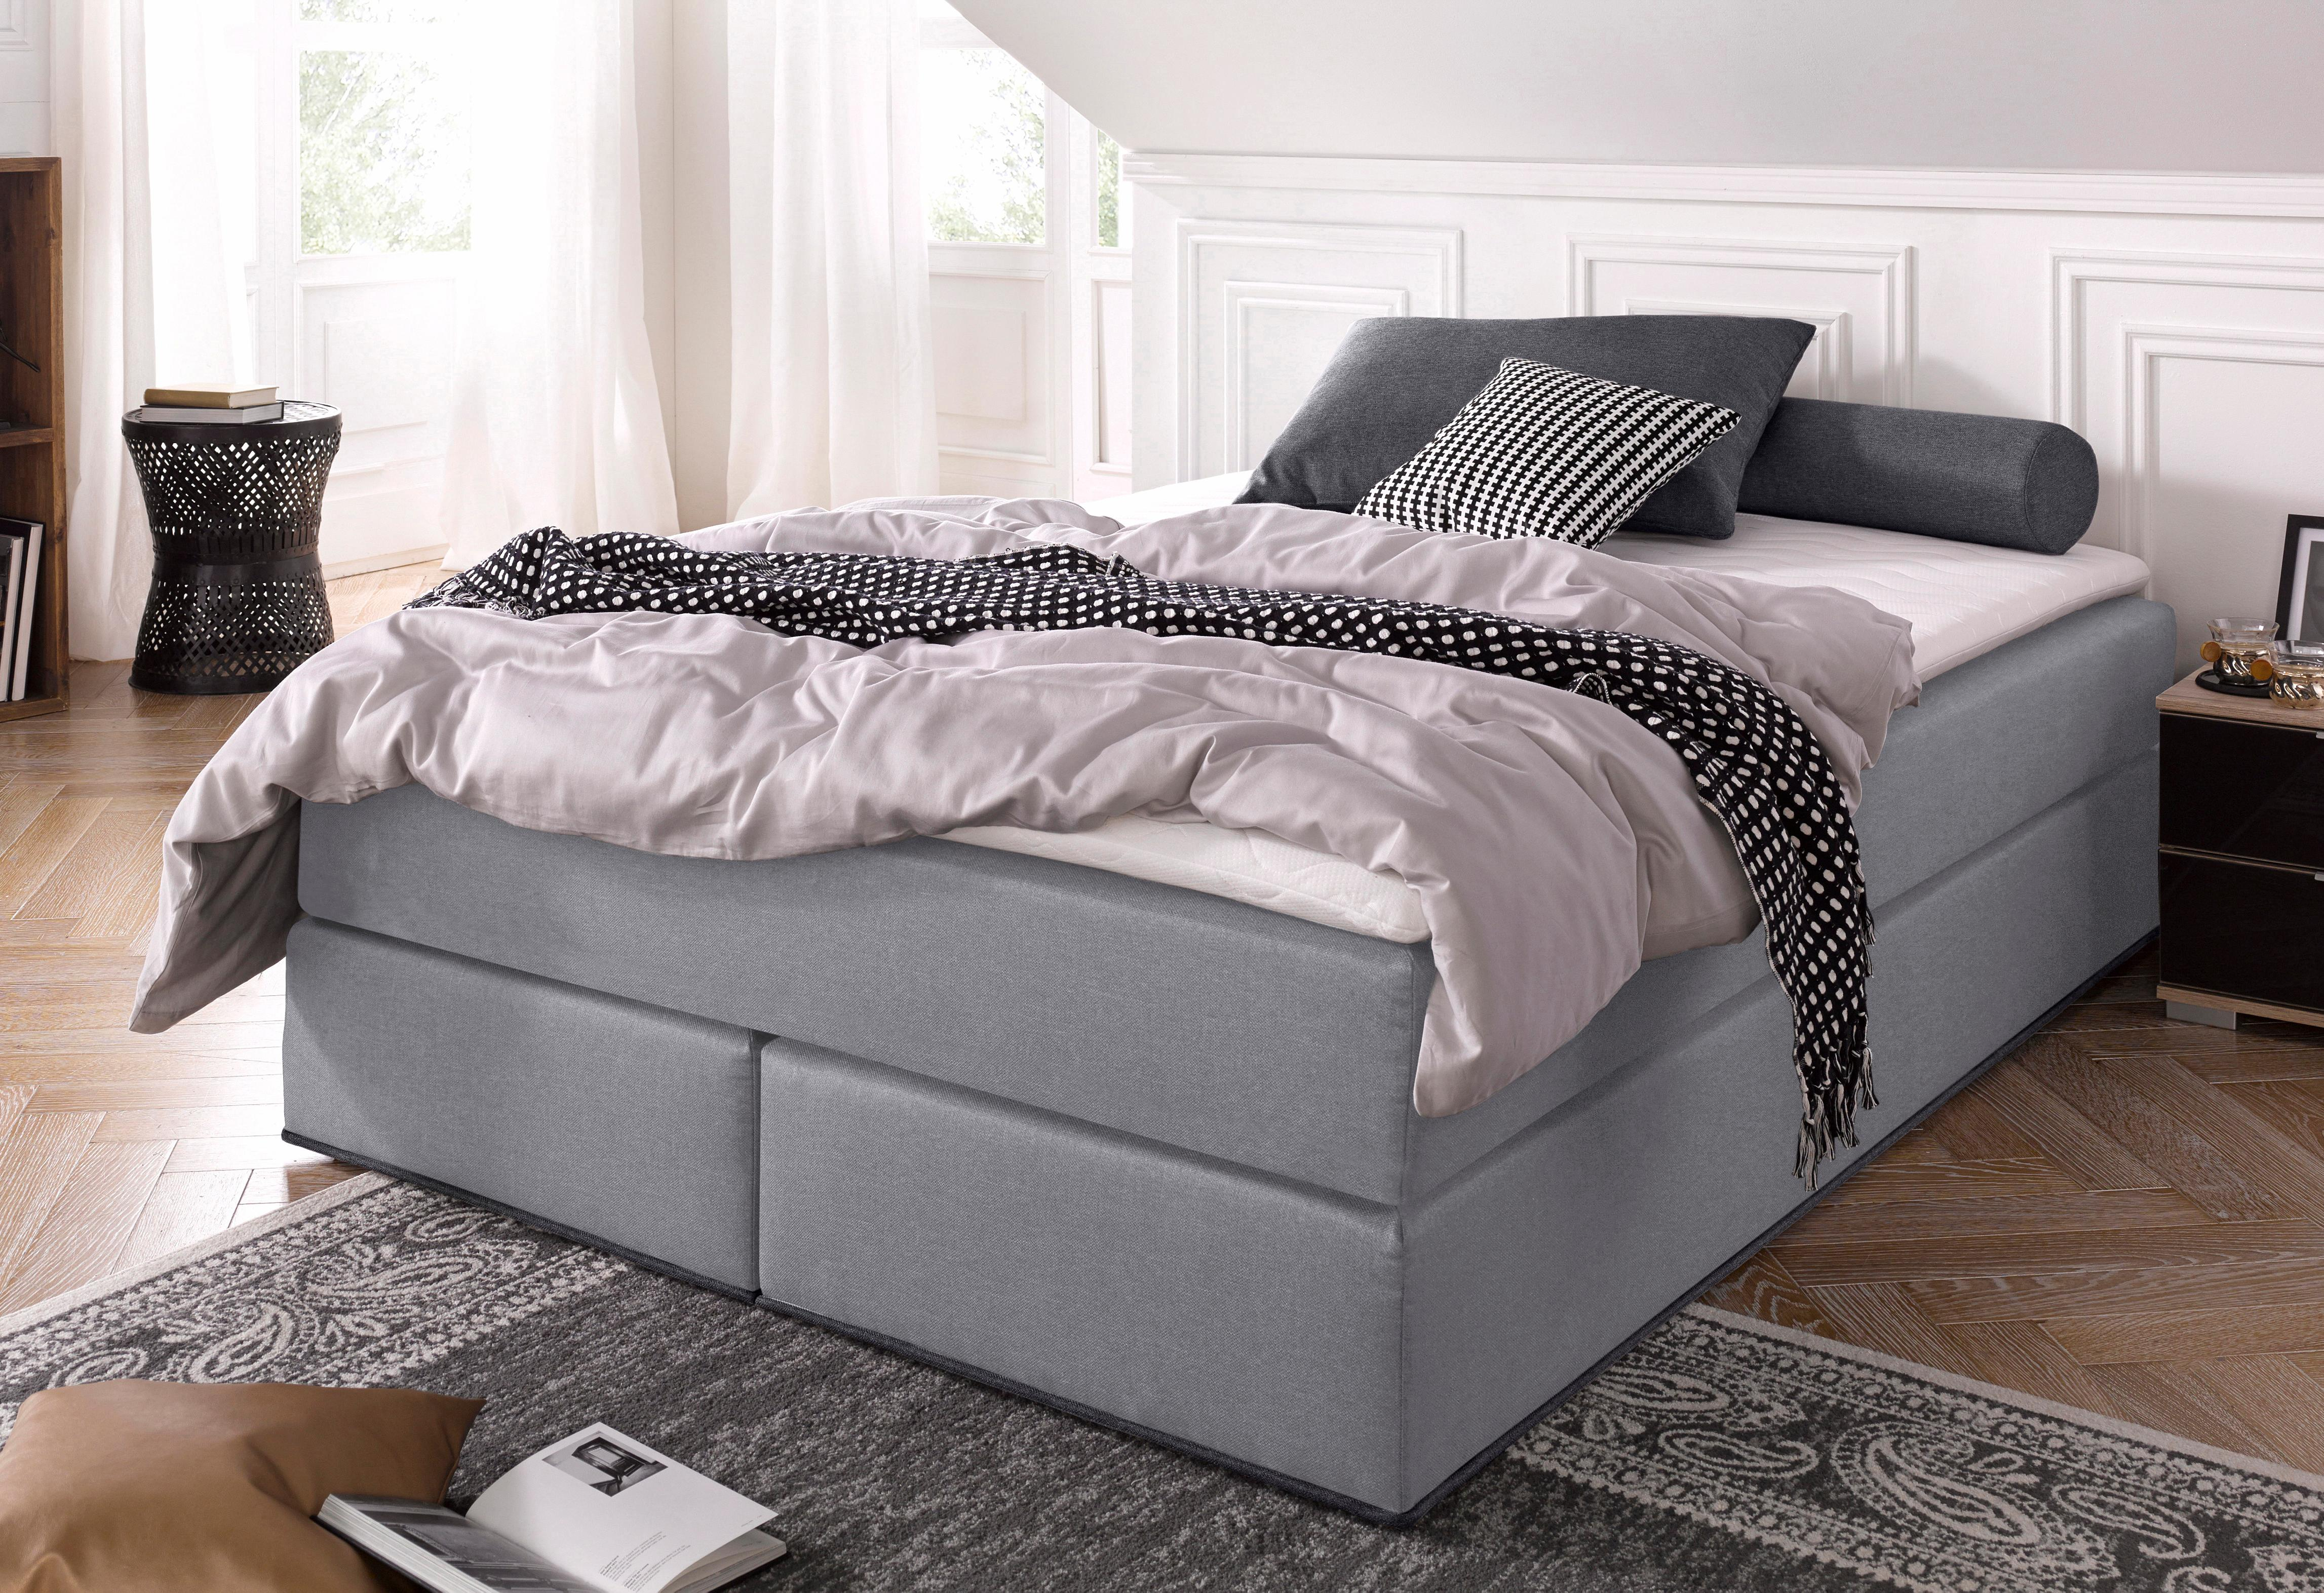 collection ab boxspringbett inkl topper bequem auf. Black Bedroom Furniture Sets. Home Design Ideas